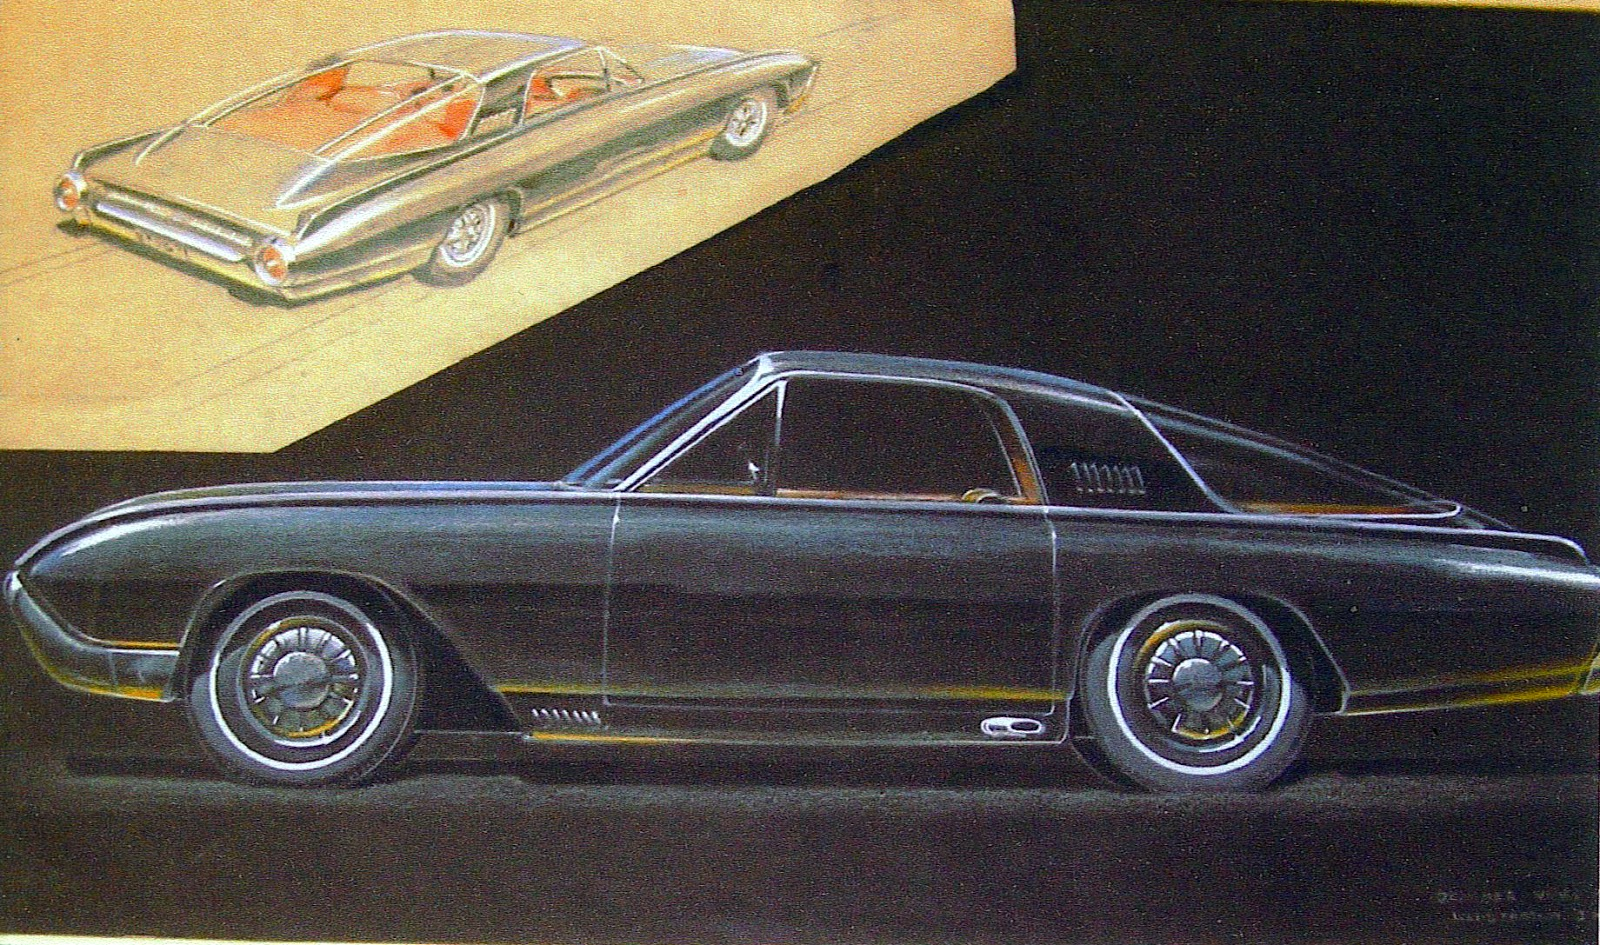 Just A Car Guy The Italien Fastback 62 3 T Bird Concept 1963 Chevy Impala 4 Door Sedan 283 Dash Wiring Harness W Fuse Was Featured In Fords 1962 63 Custom Caravan And 1964 New York Worlds Fairs Cavalcade Of Cars Then Appeared Autoramas